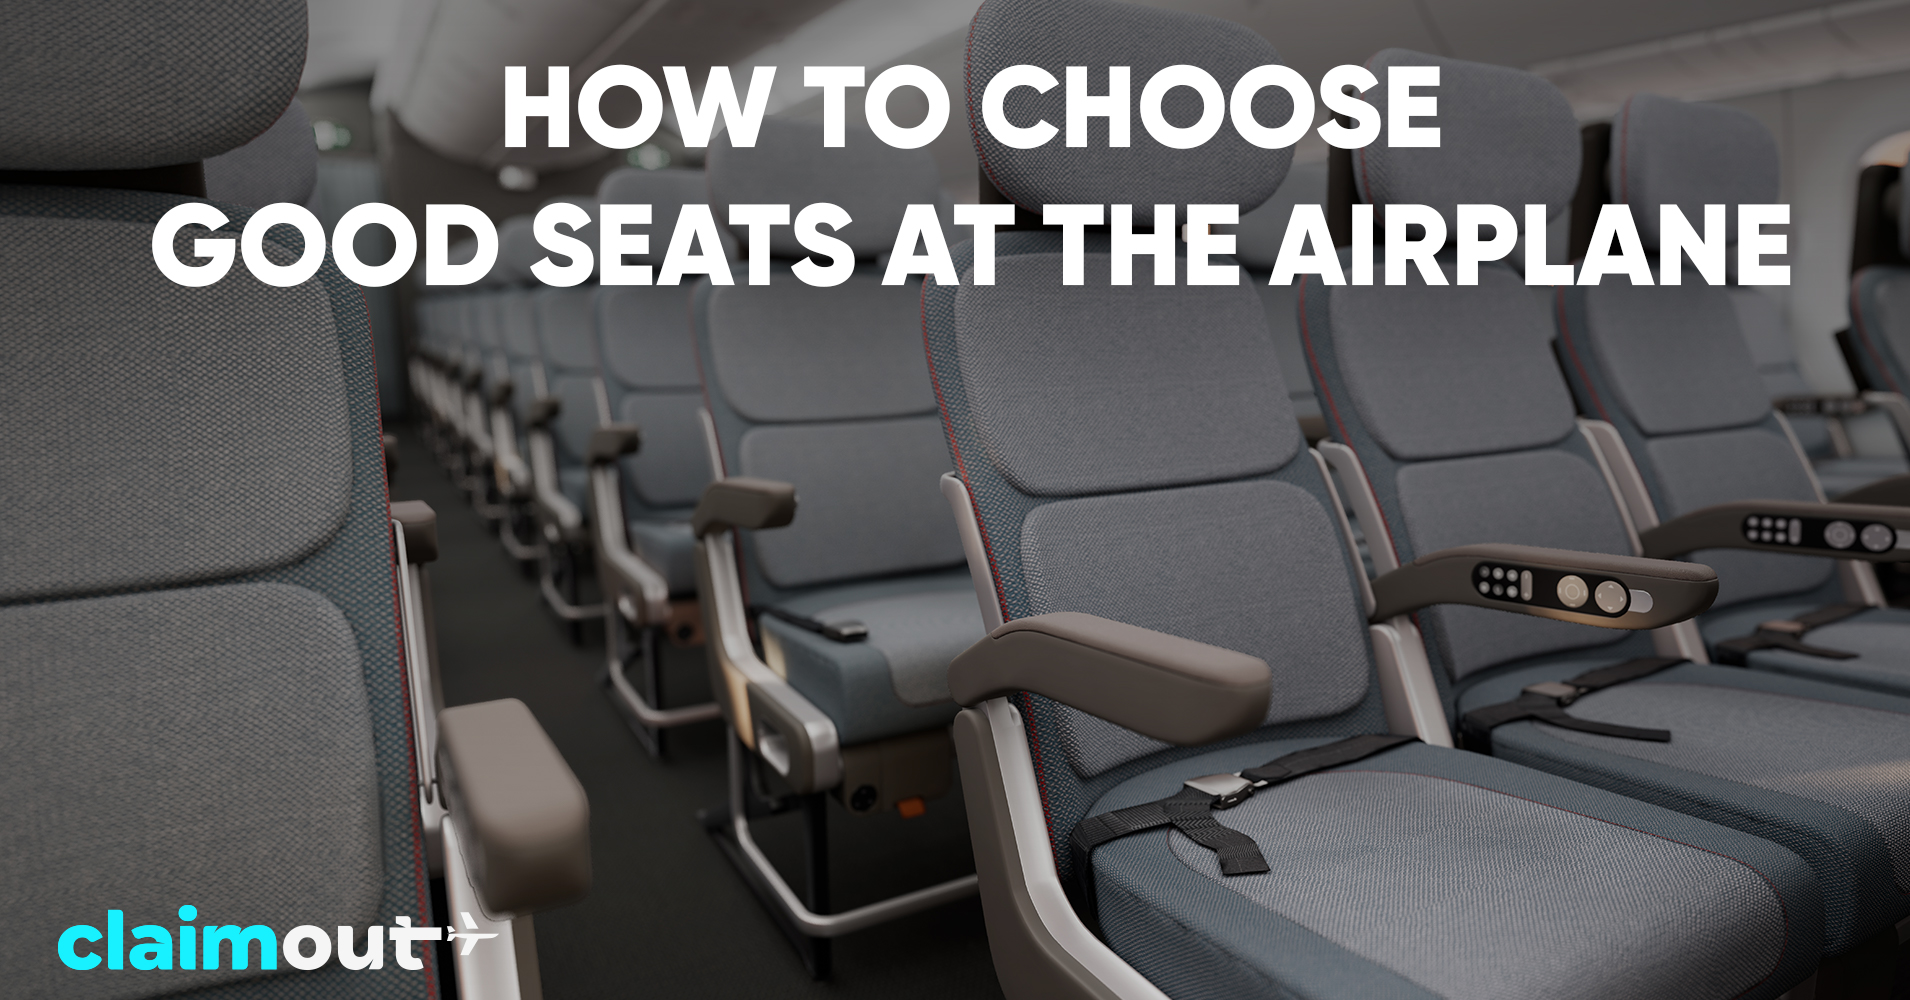 How to choose good seats at the airplane